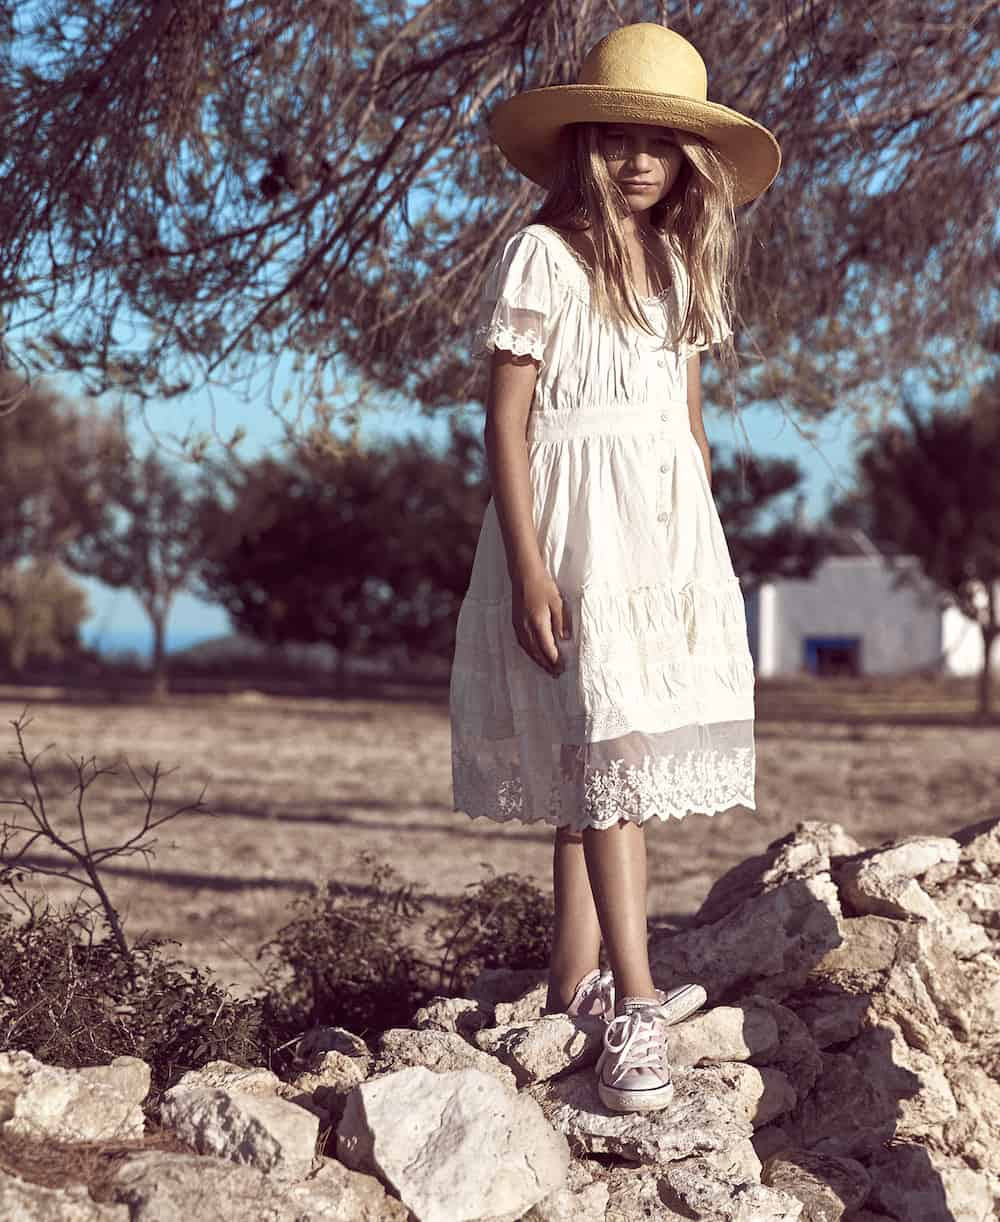 Zoe Adlersberg Earnshaw's shoot in Ibiza